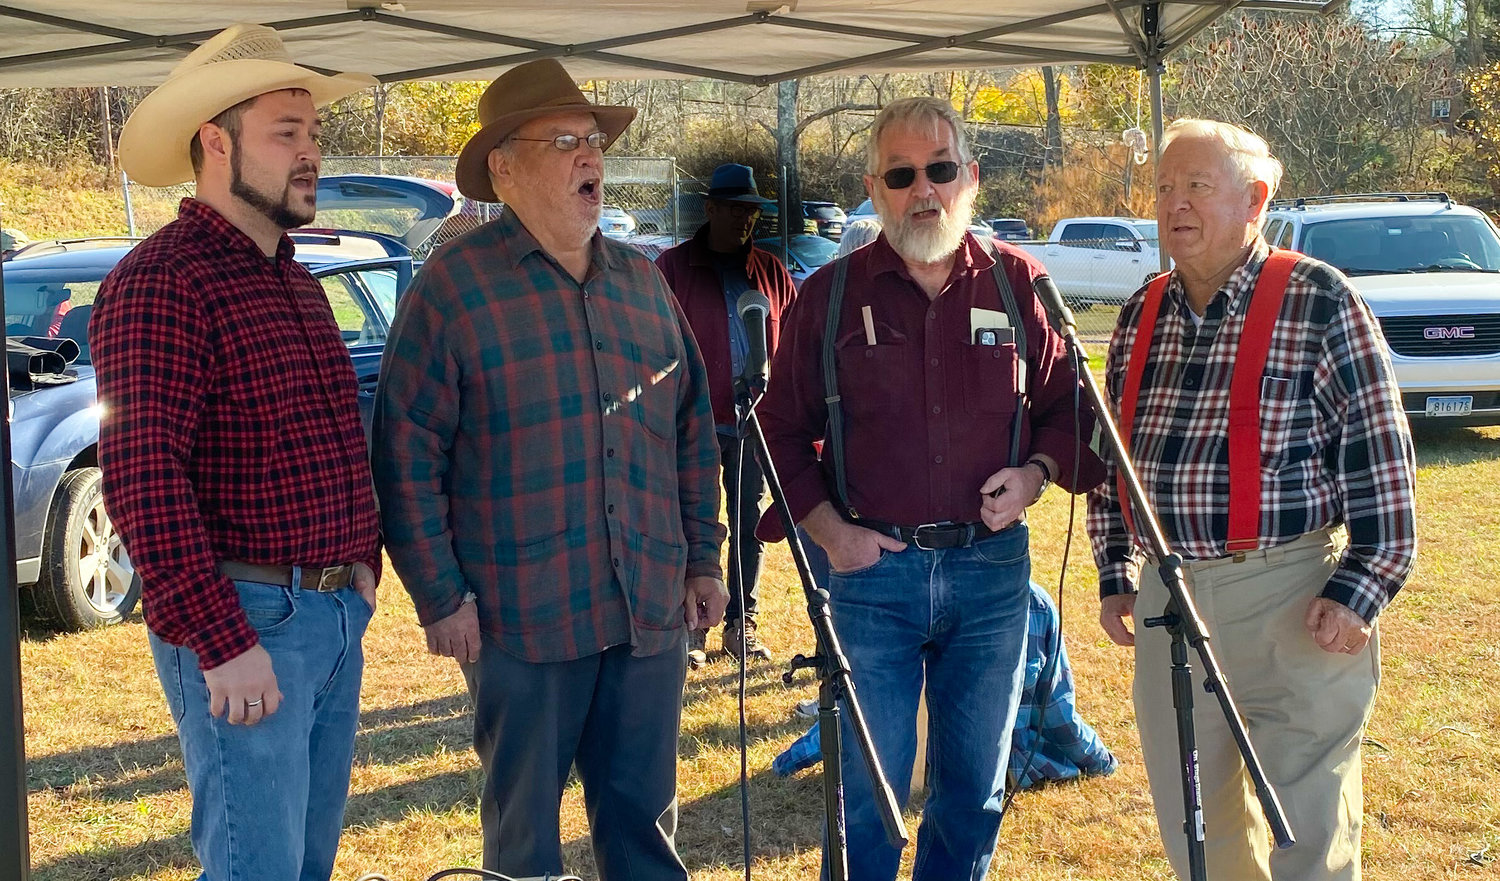 The Noteables Barbershop Quartet performs in four-part harmony for the crowds at the Narrowsburg Logging Days festival.